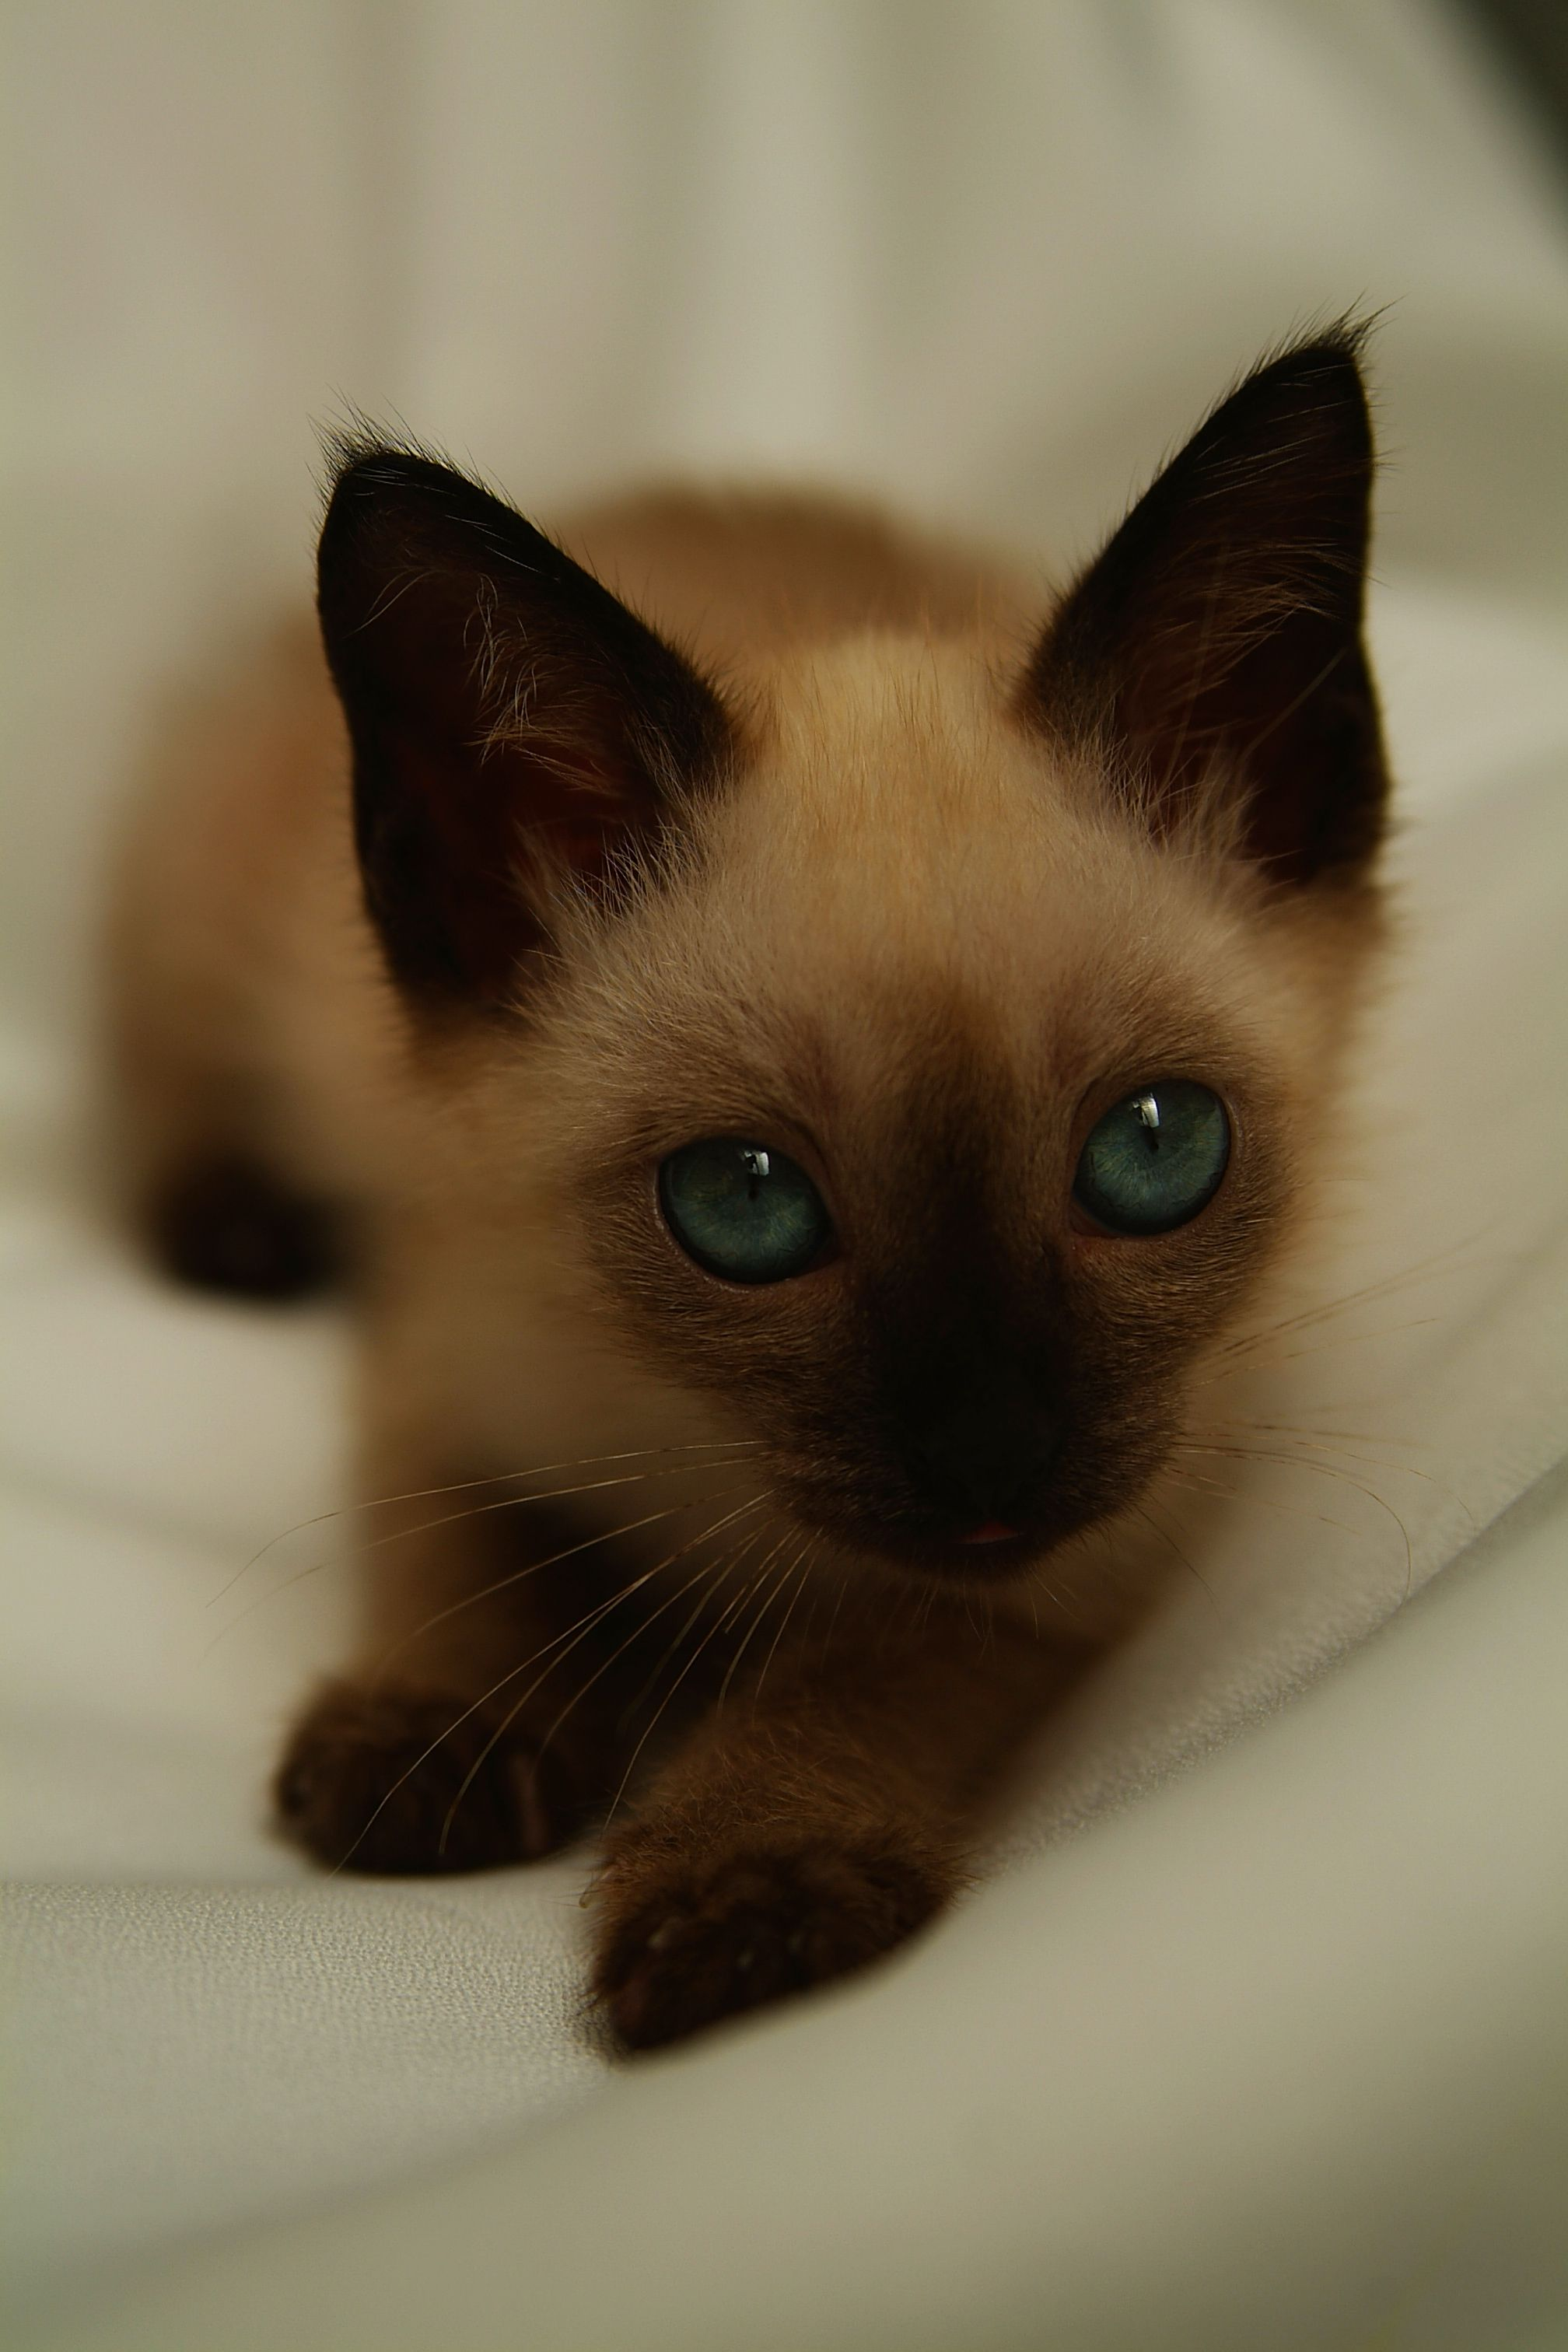 Got A Problem With Your Pet Try These Top Cat Care Tips Want To Know More Click On The Image Catstips Siamese Kittens Cute Cats Pretty Cats